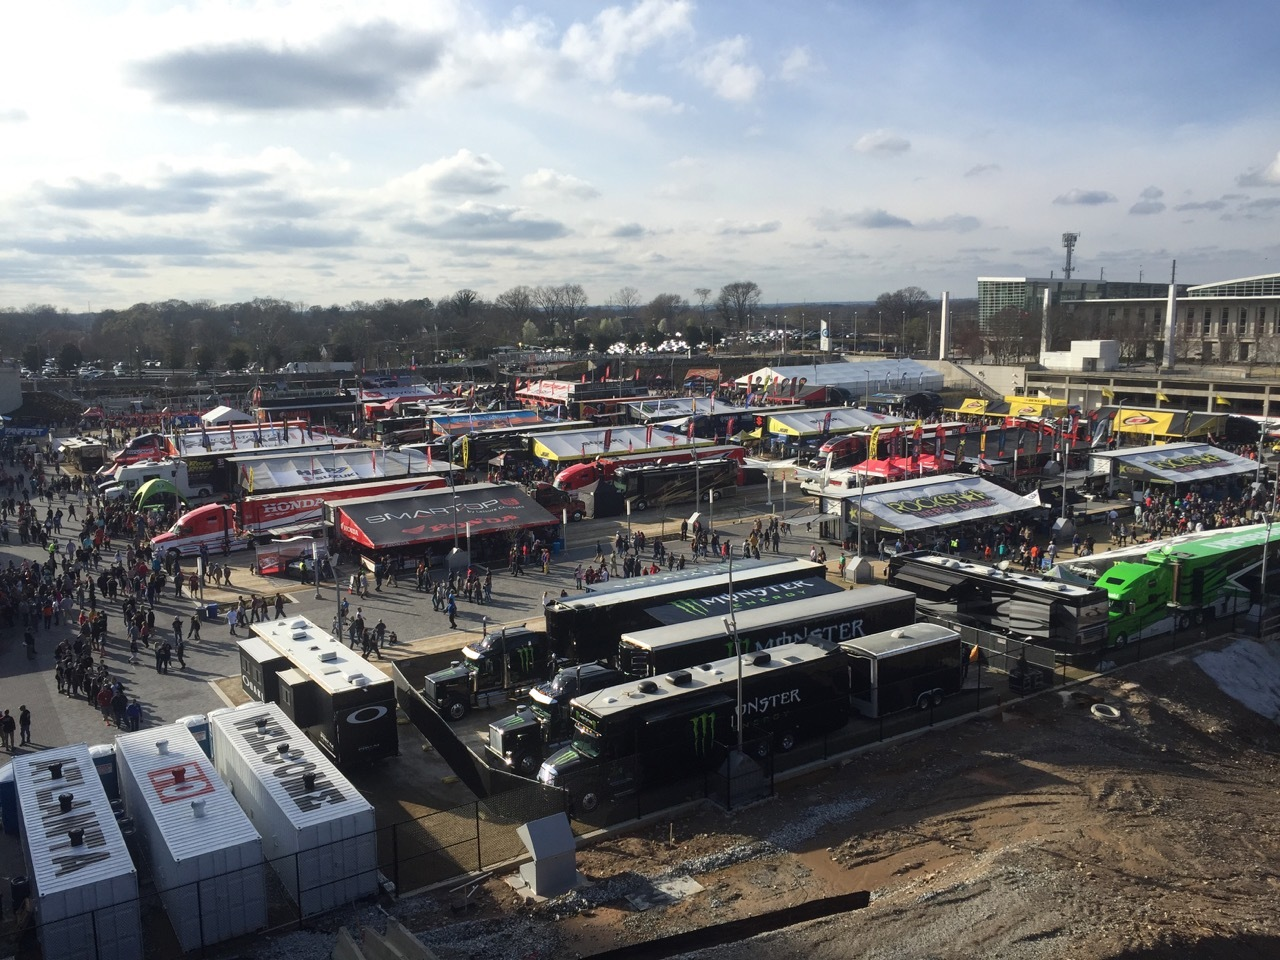 Supercross 2019 Atlanta - FanZone